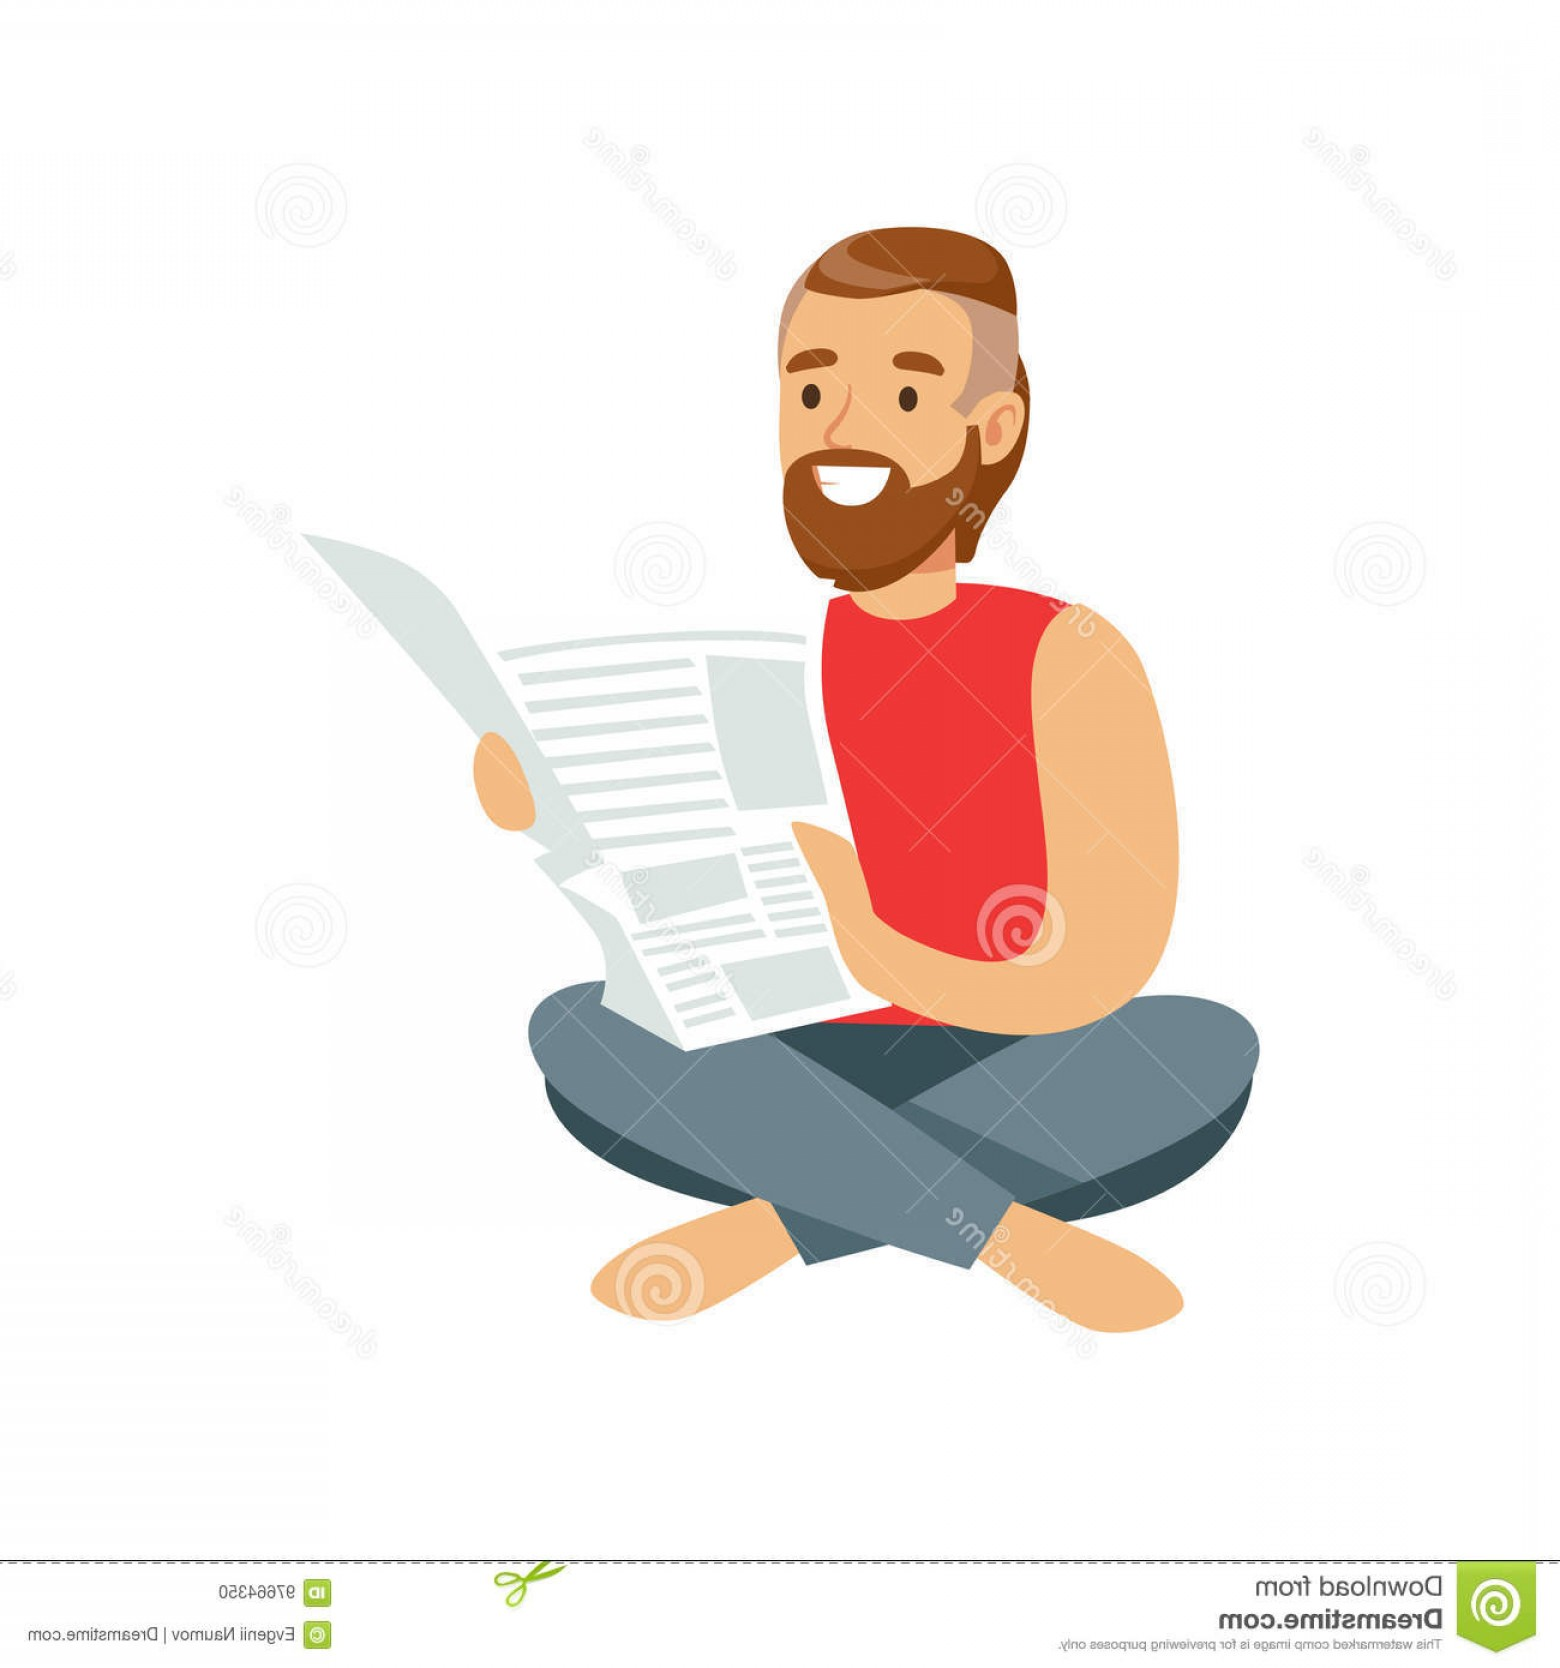 Vector Man Sitting On Floor: Stock Illustration Bearded Young Man Sitting Floor Reading Book Vector Illustration Isolated White Background Image